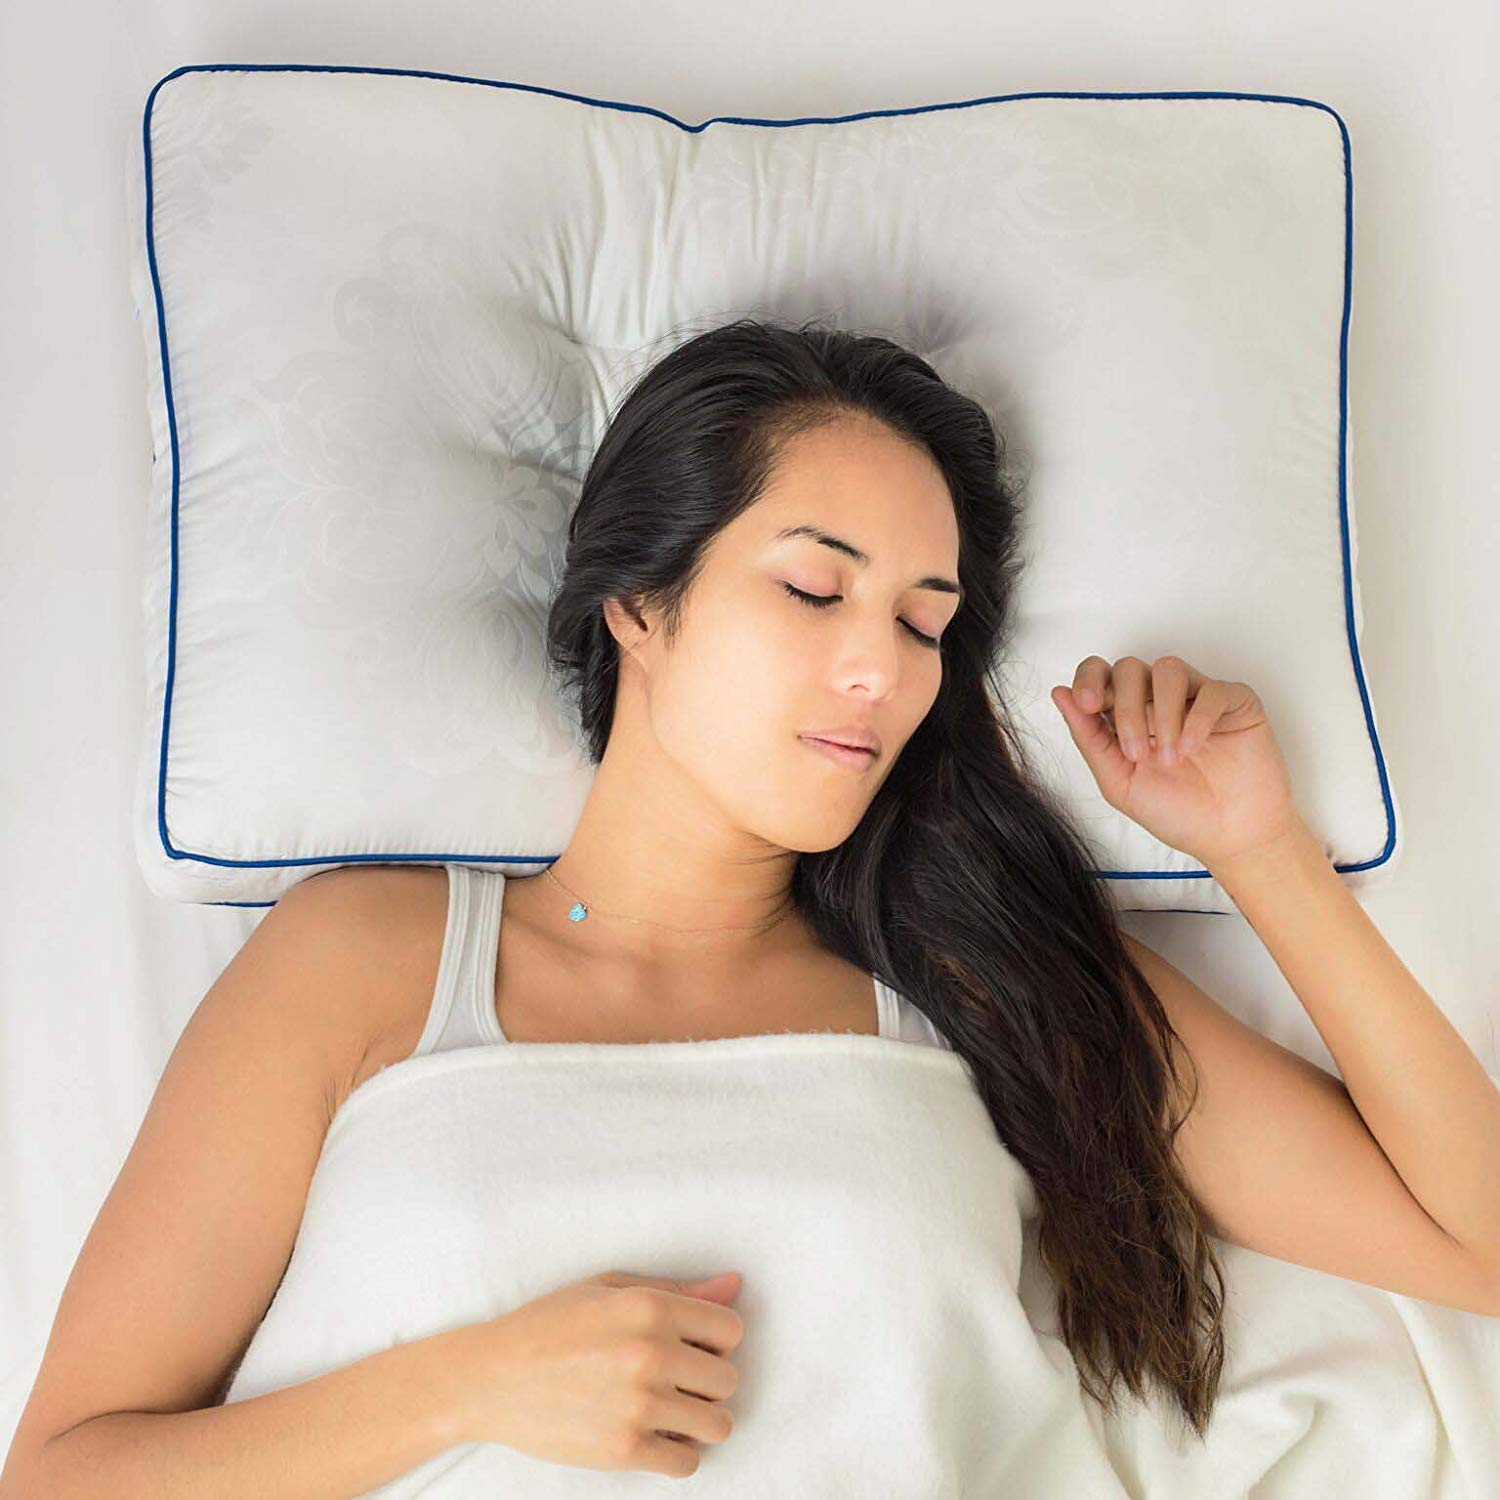 Nature's Guest best pillow for back sleepers review by www.dailysleep.org